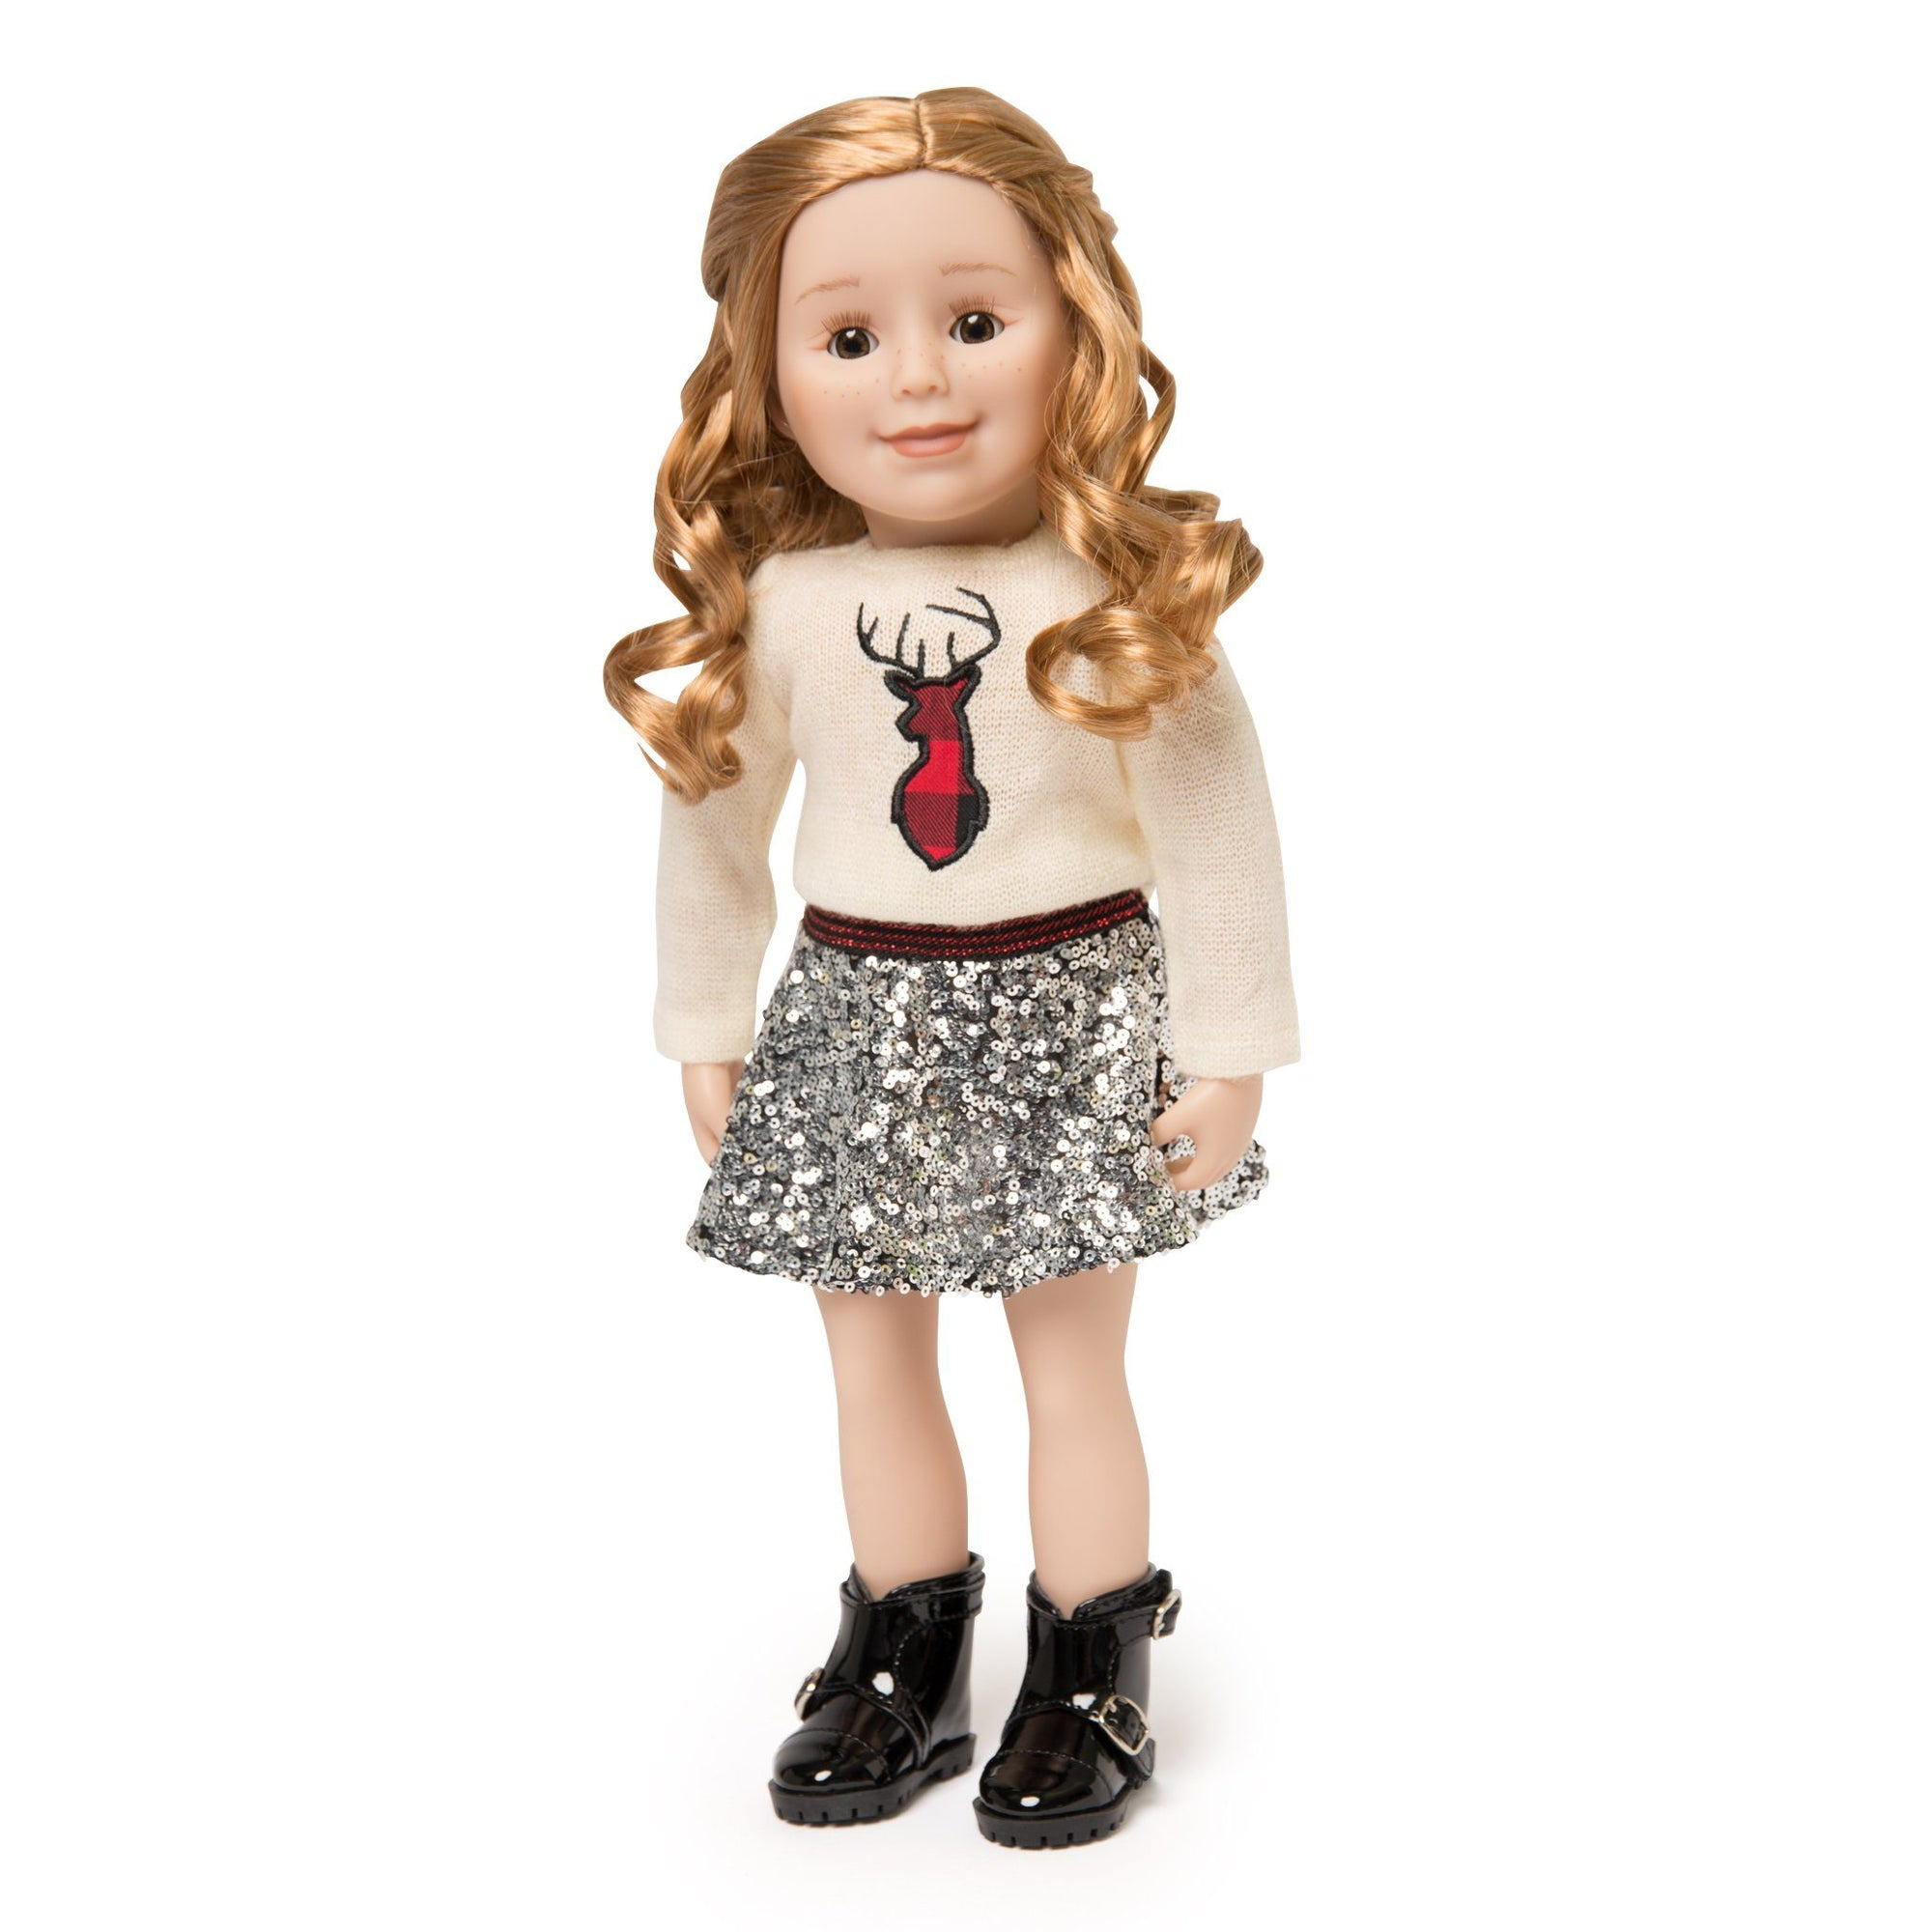 "Knit sweater with deer silhouette, glittery sequined skirt and ankle boots.  Fits all 18"" dolls"